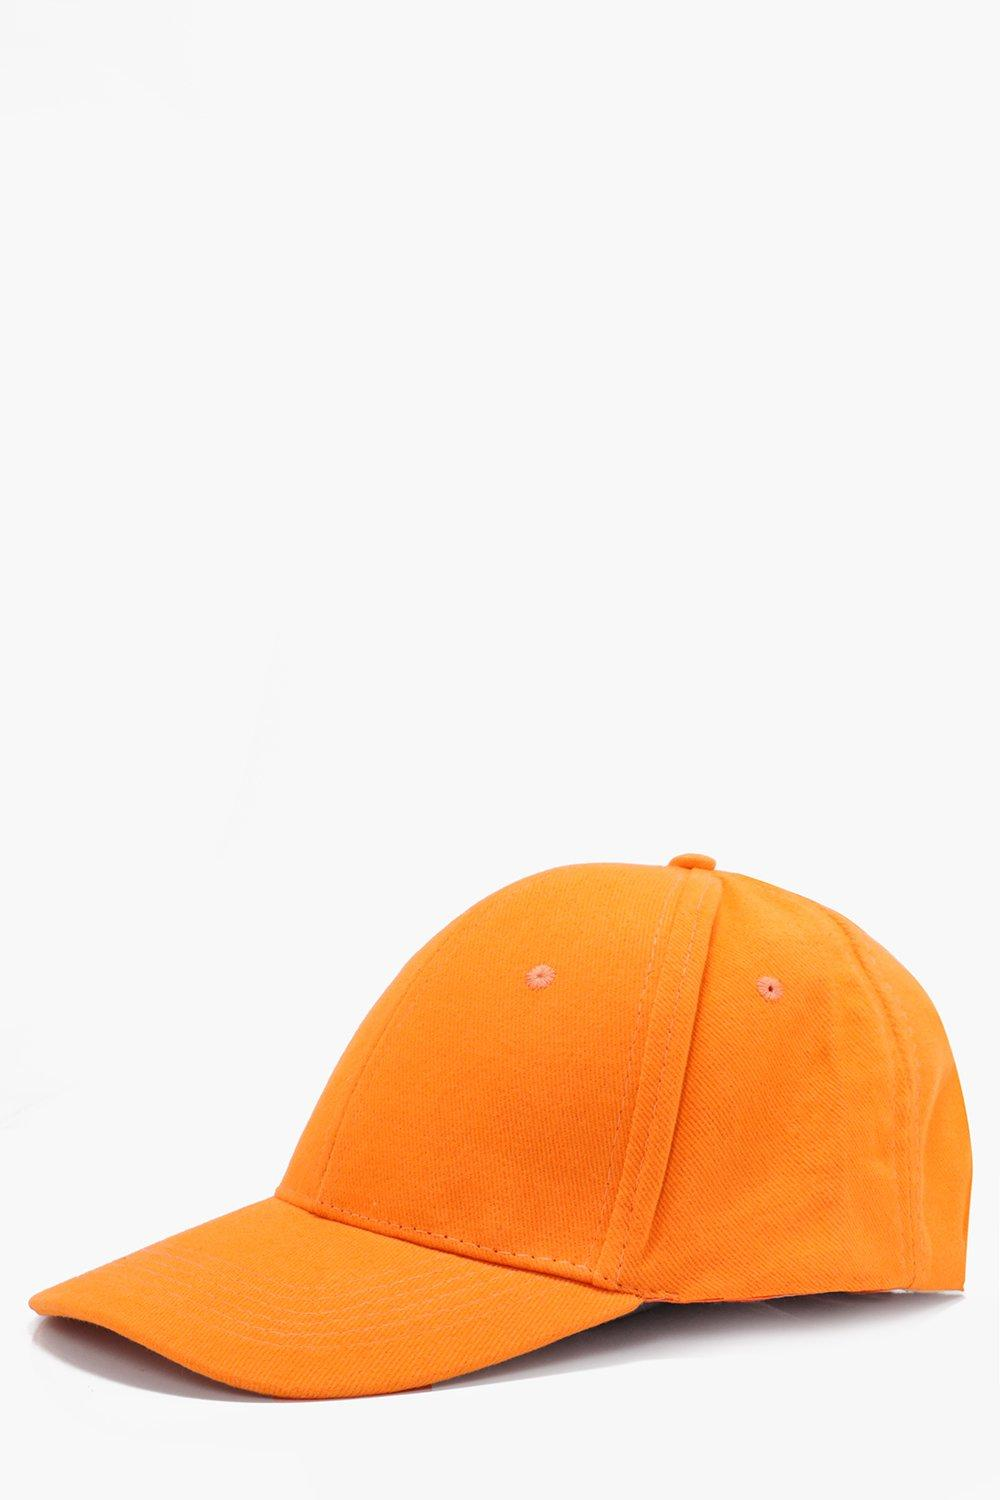 Cap - orange - Basic Cap - orange